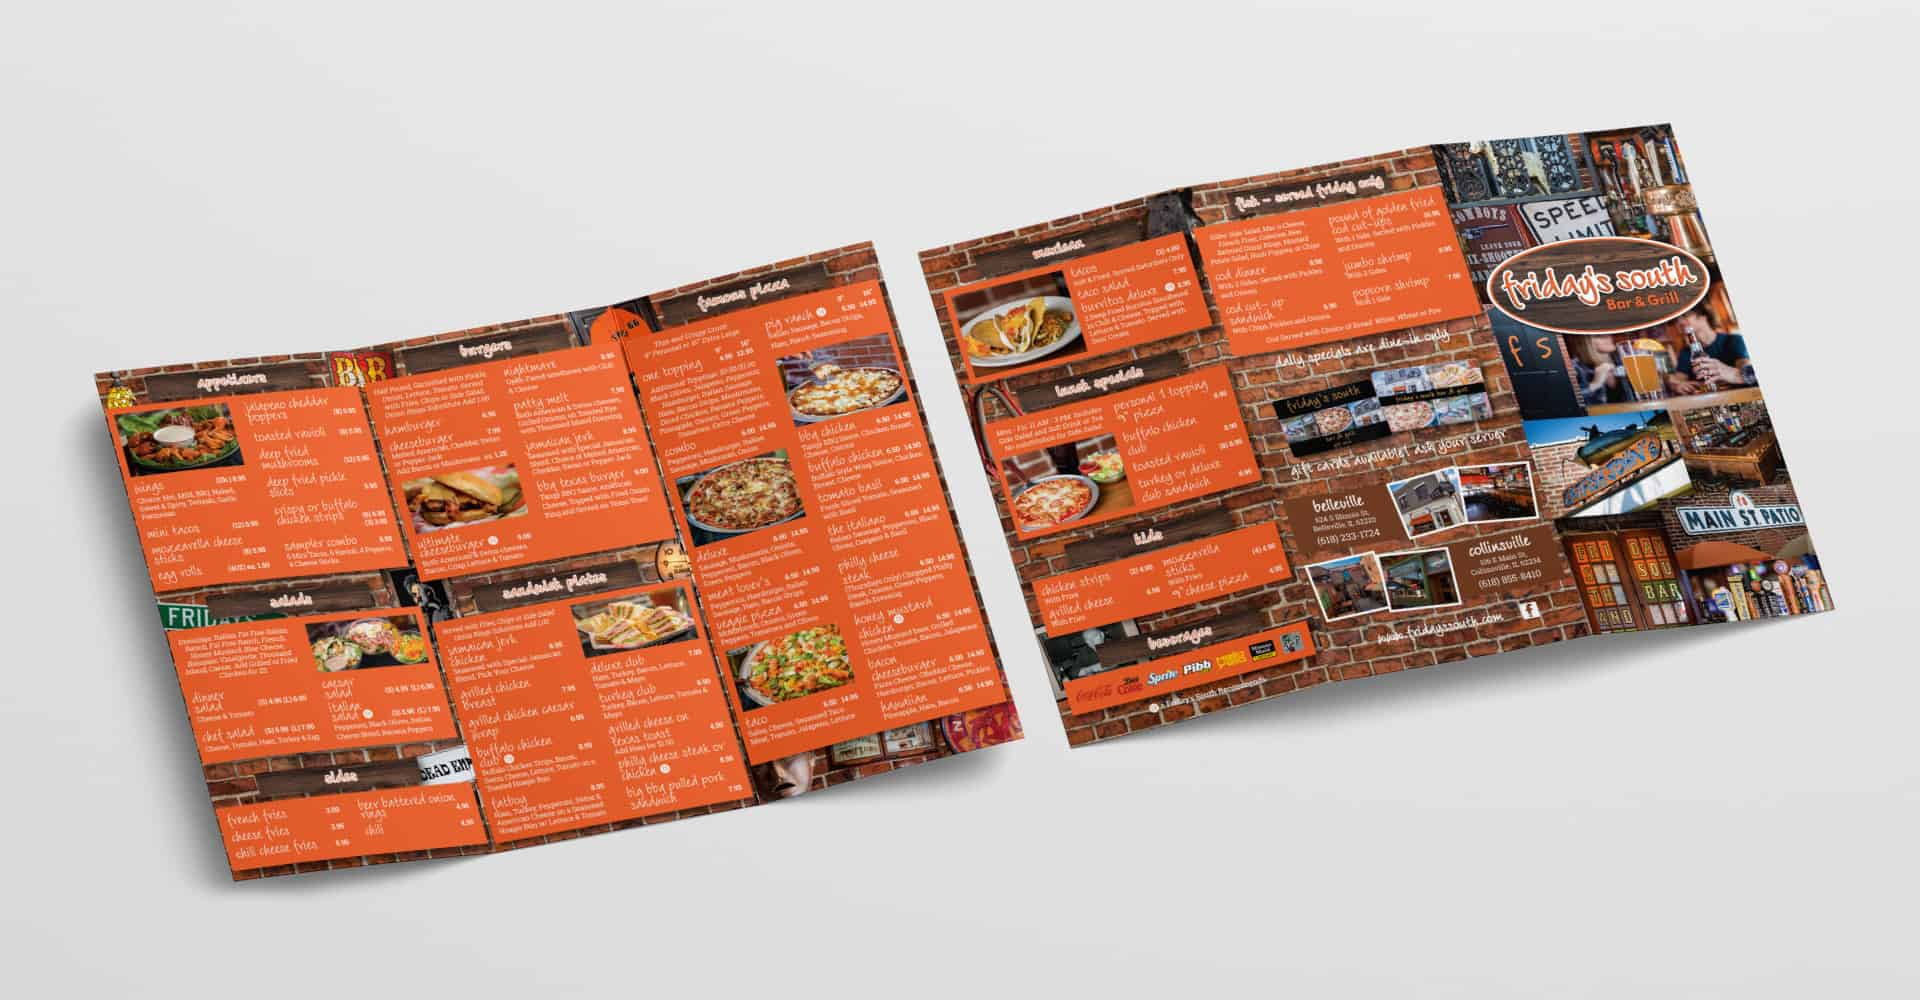 Friday's South trifold menu brochure